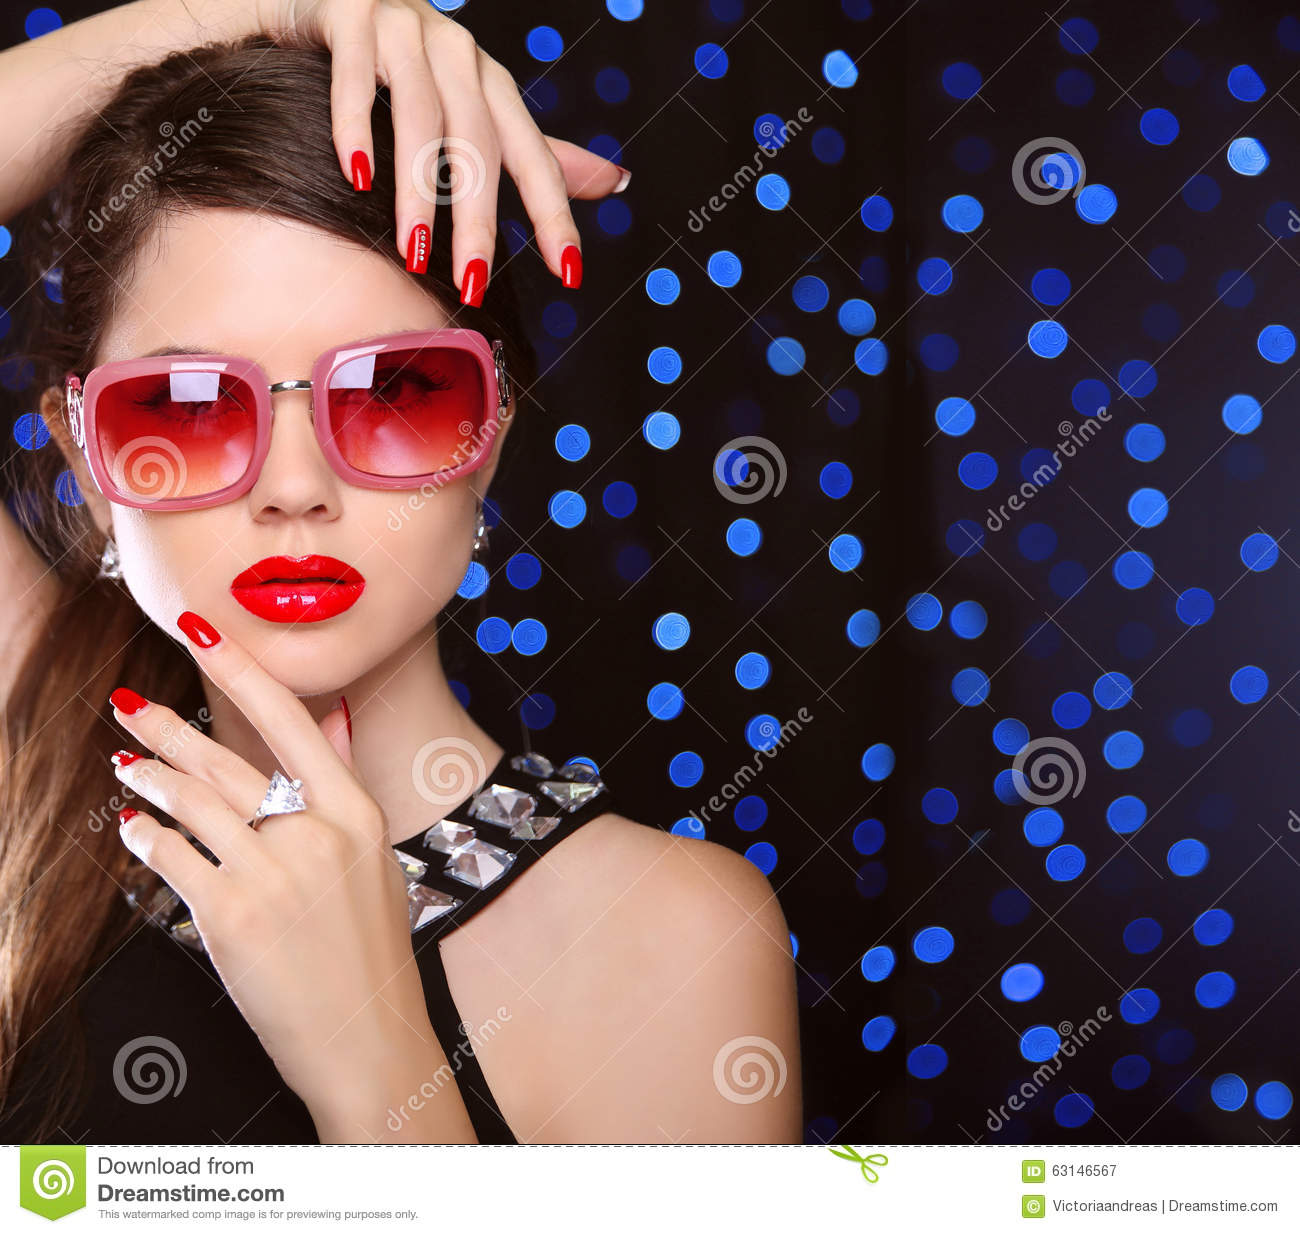 Fashion Beauty Model Girl Stock Image Image Of Manicured: Beauty. Manicured Nails. Fashion Model Girl In Sunglasses